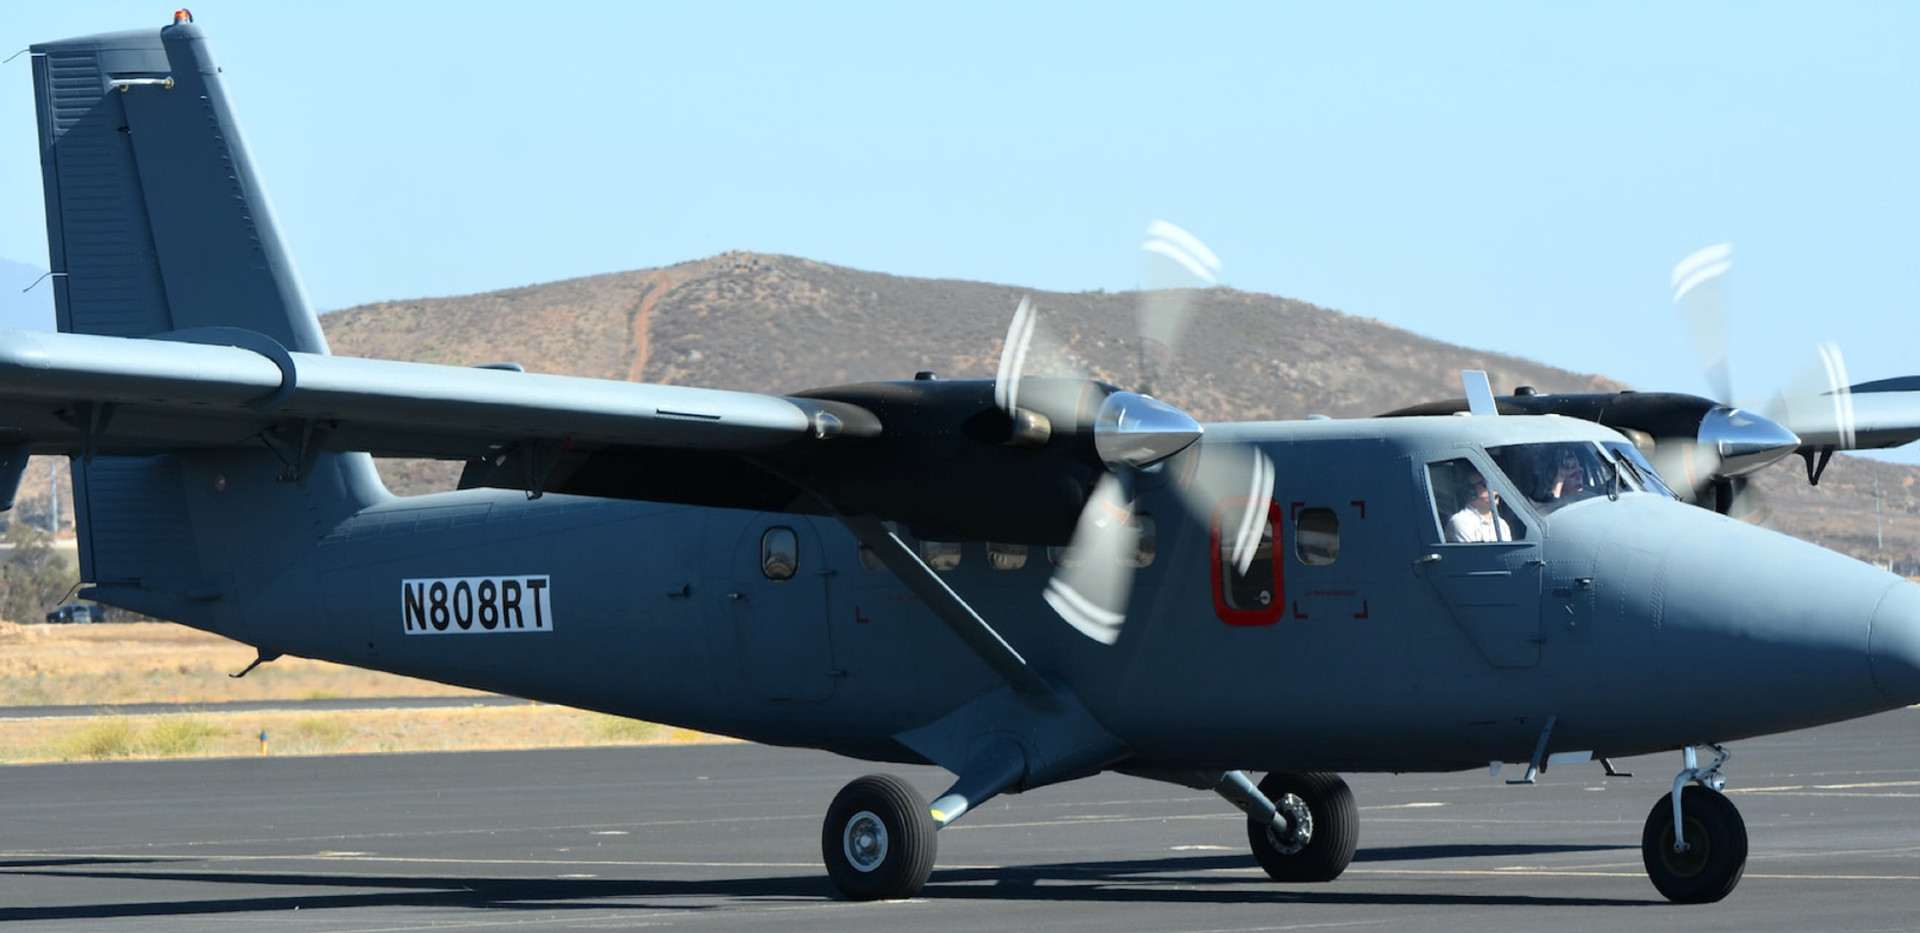 Twin Otter aircraft on tarmac